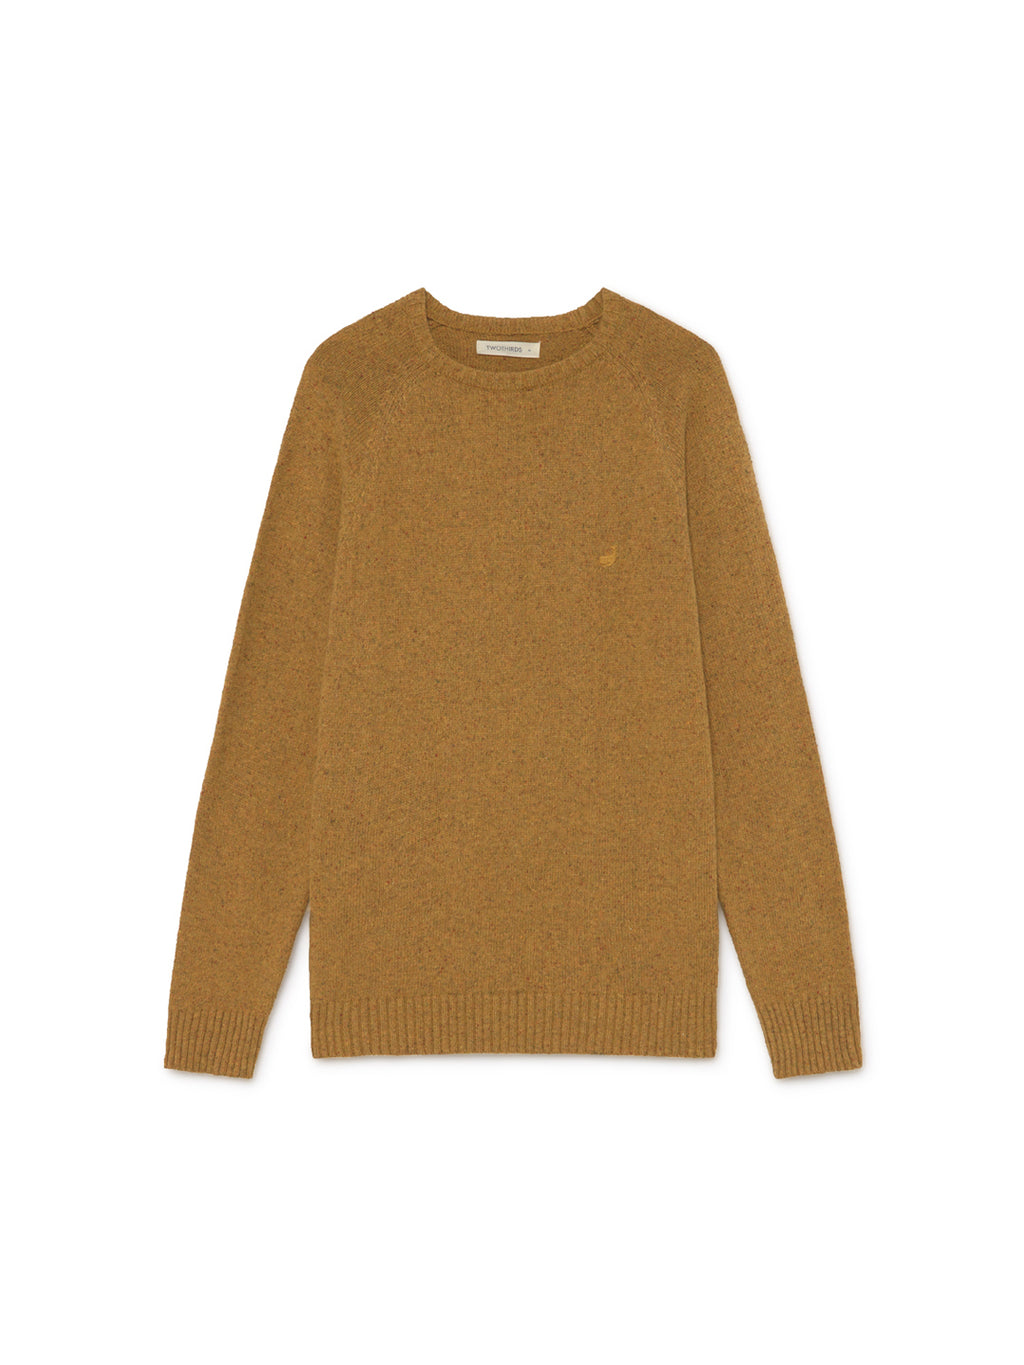 TWOTHIRDS Mens Knit: Dring - Mustard front